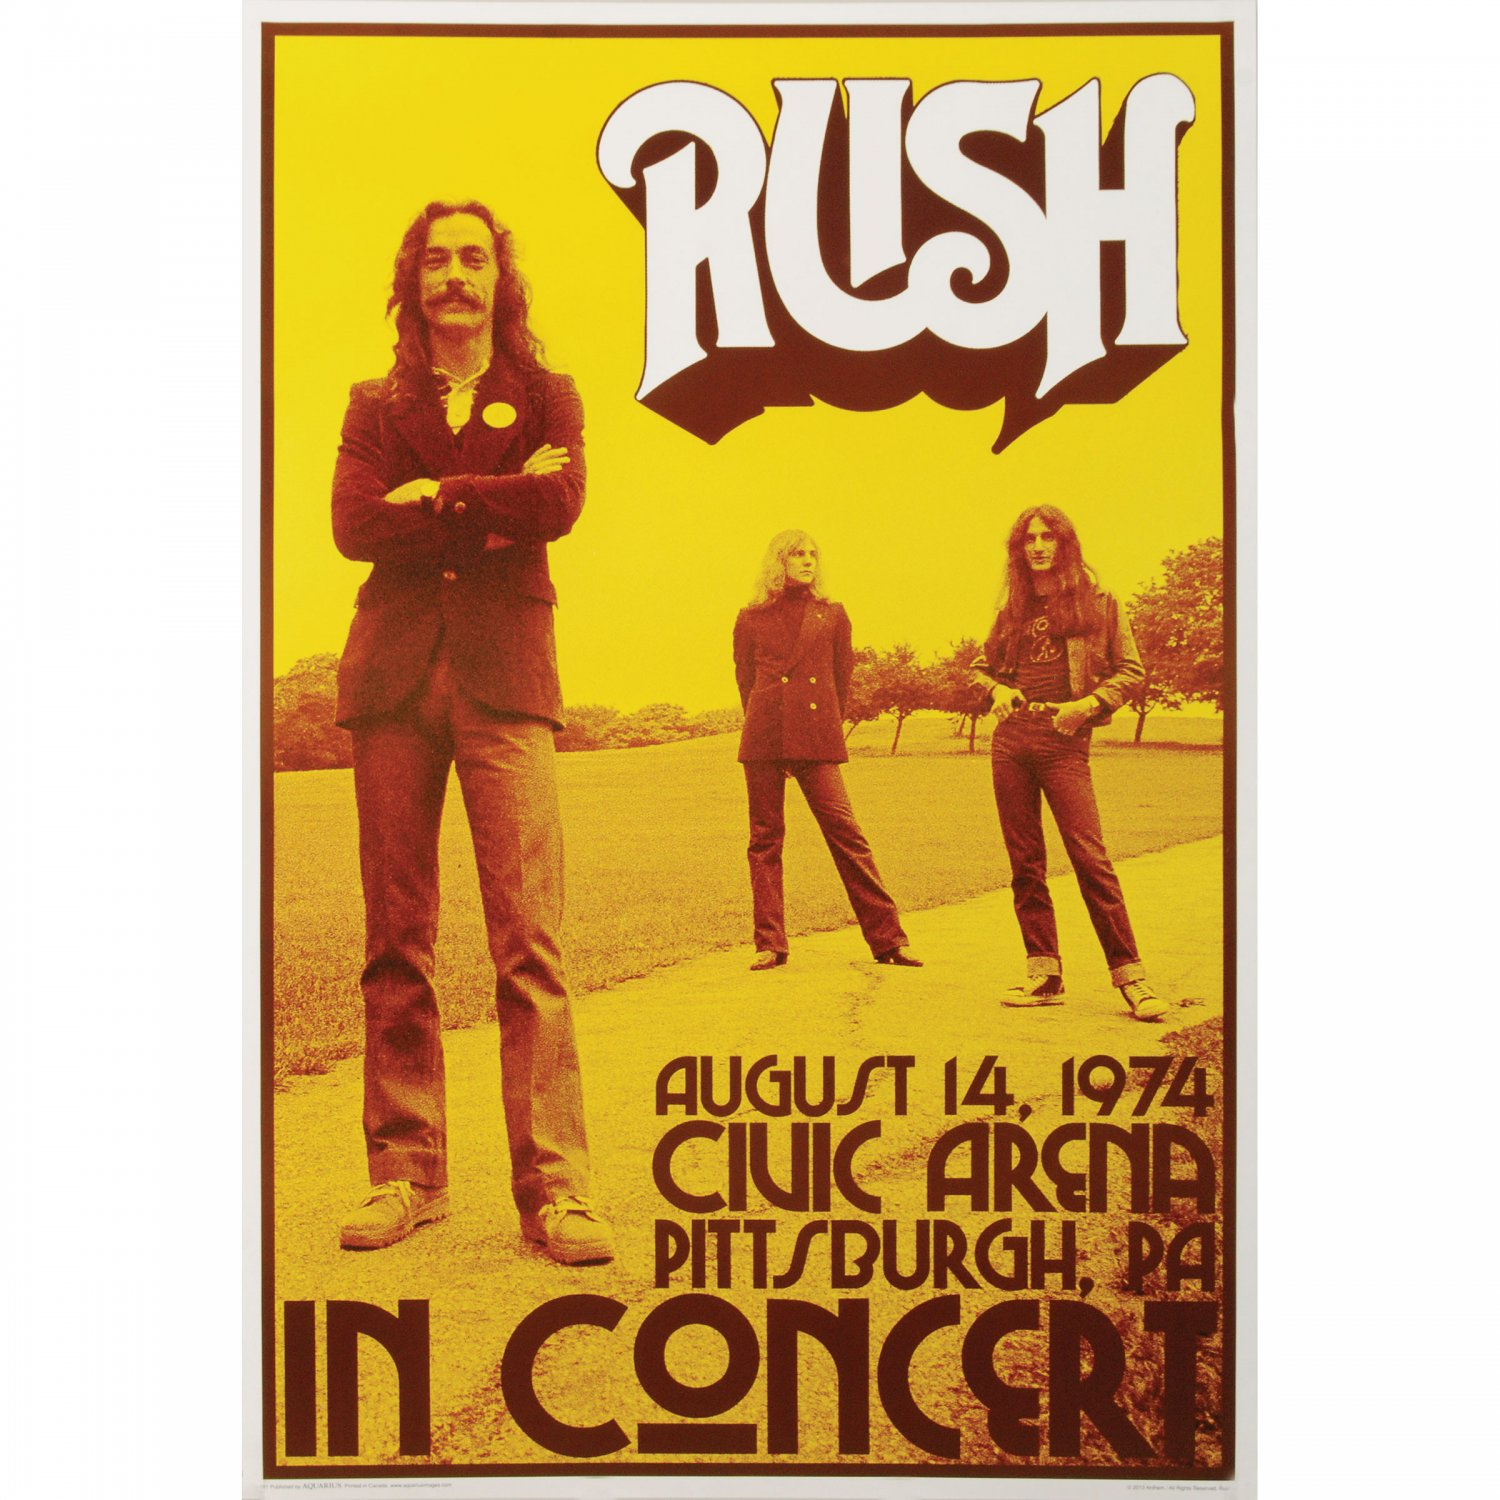 Rush Concert  Poster 12x19 inches